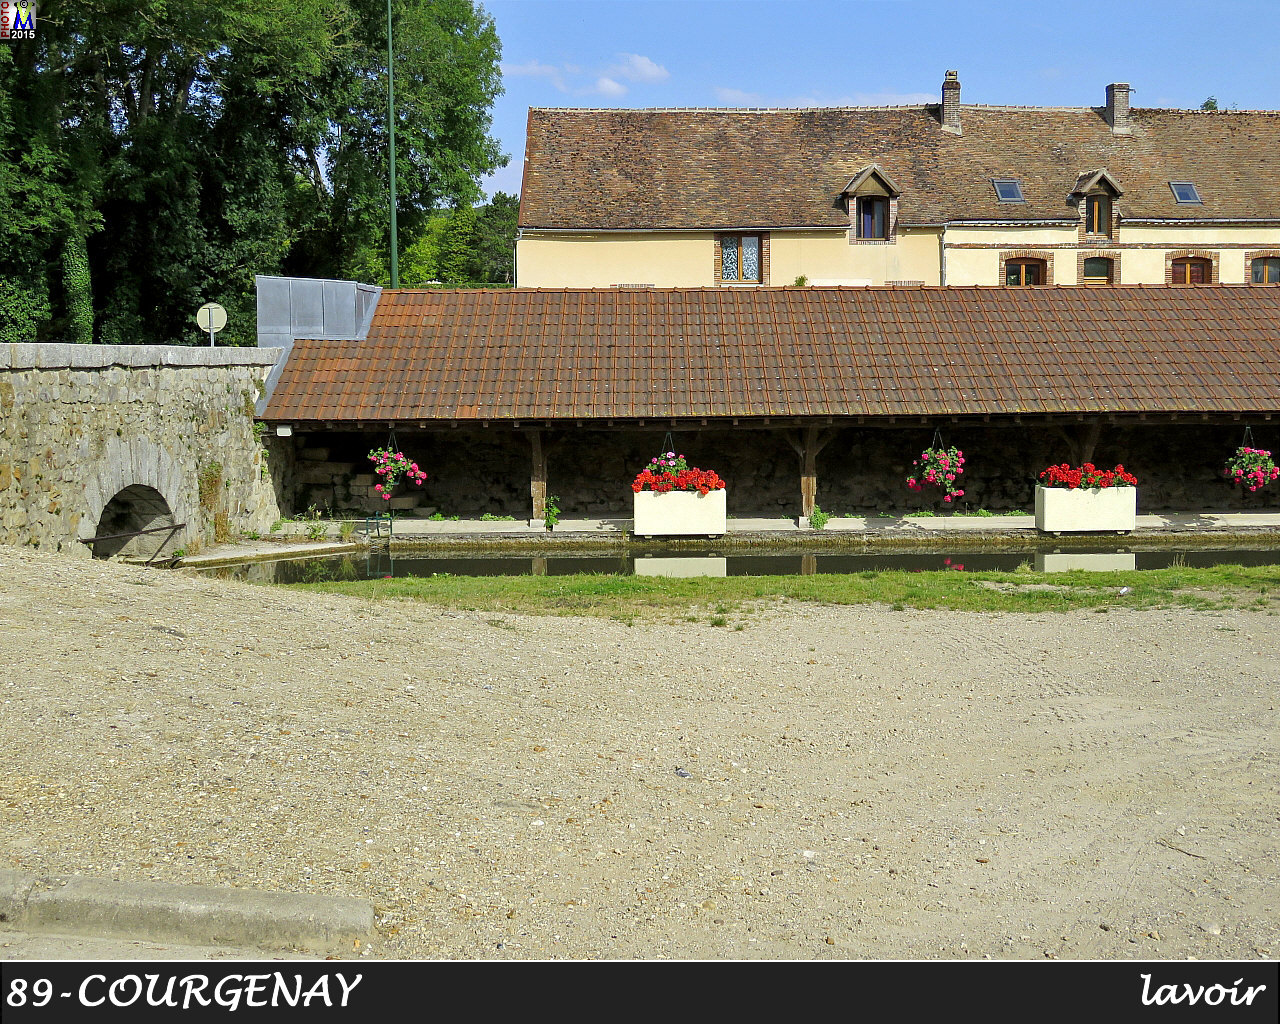 89COURGENAY_lavoir_100.jpg